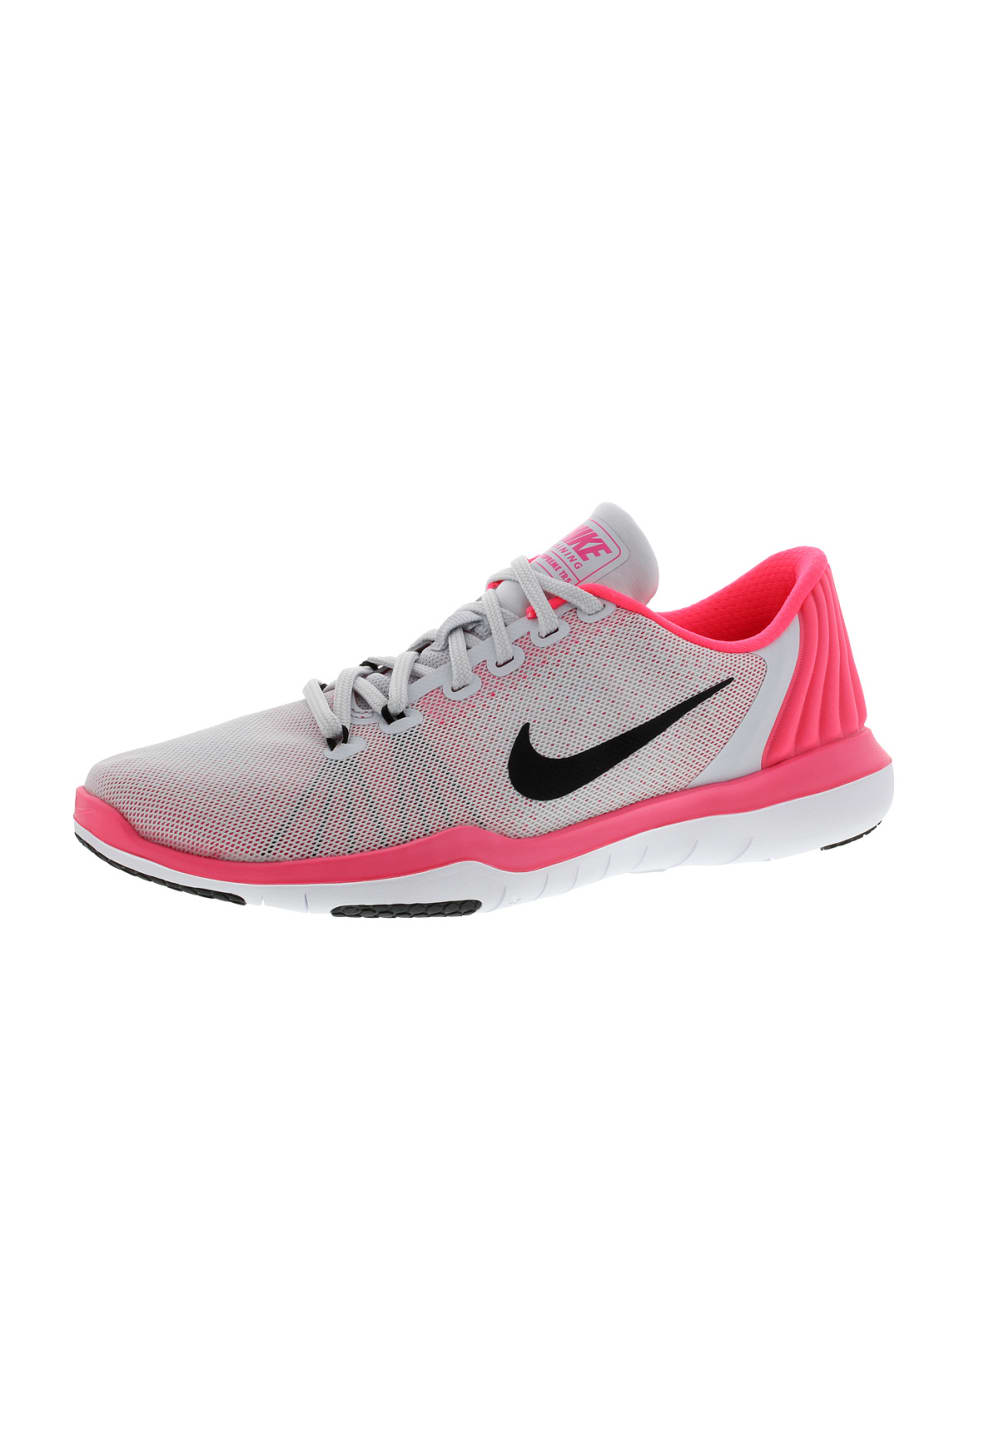 5 Nike Supreme Flex Fitness Blanc Tr Chaussures Pour Femme 9WYDH2EI